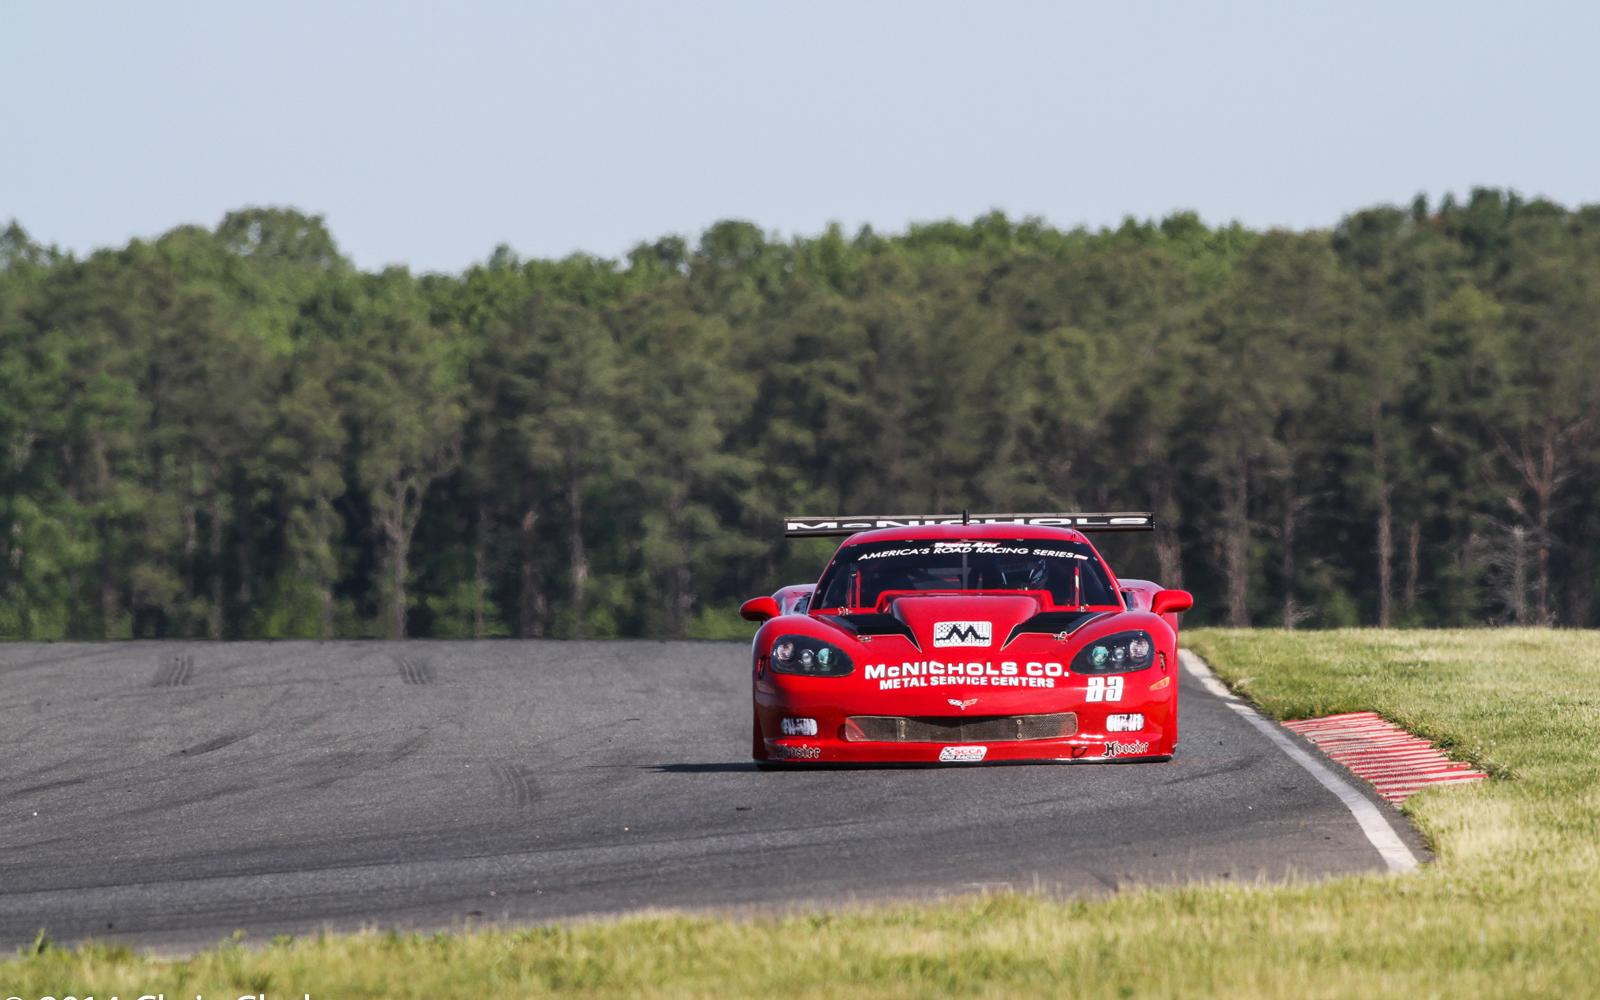 Ruman and Lawrence lead classes in practice at New Jersey Motorsports Park